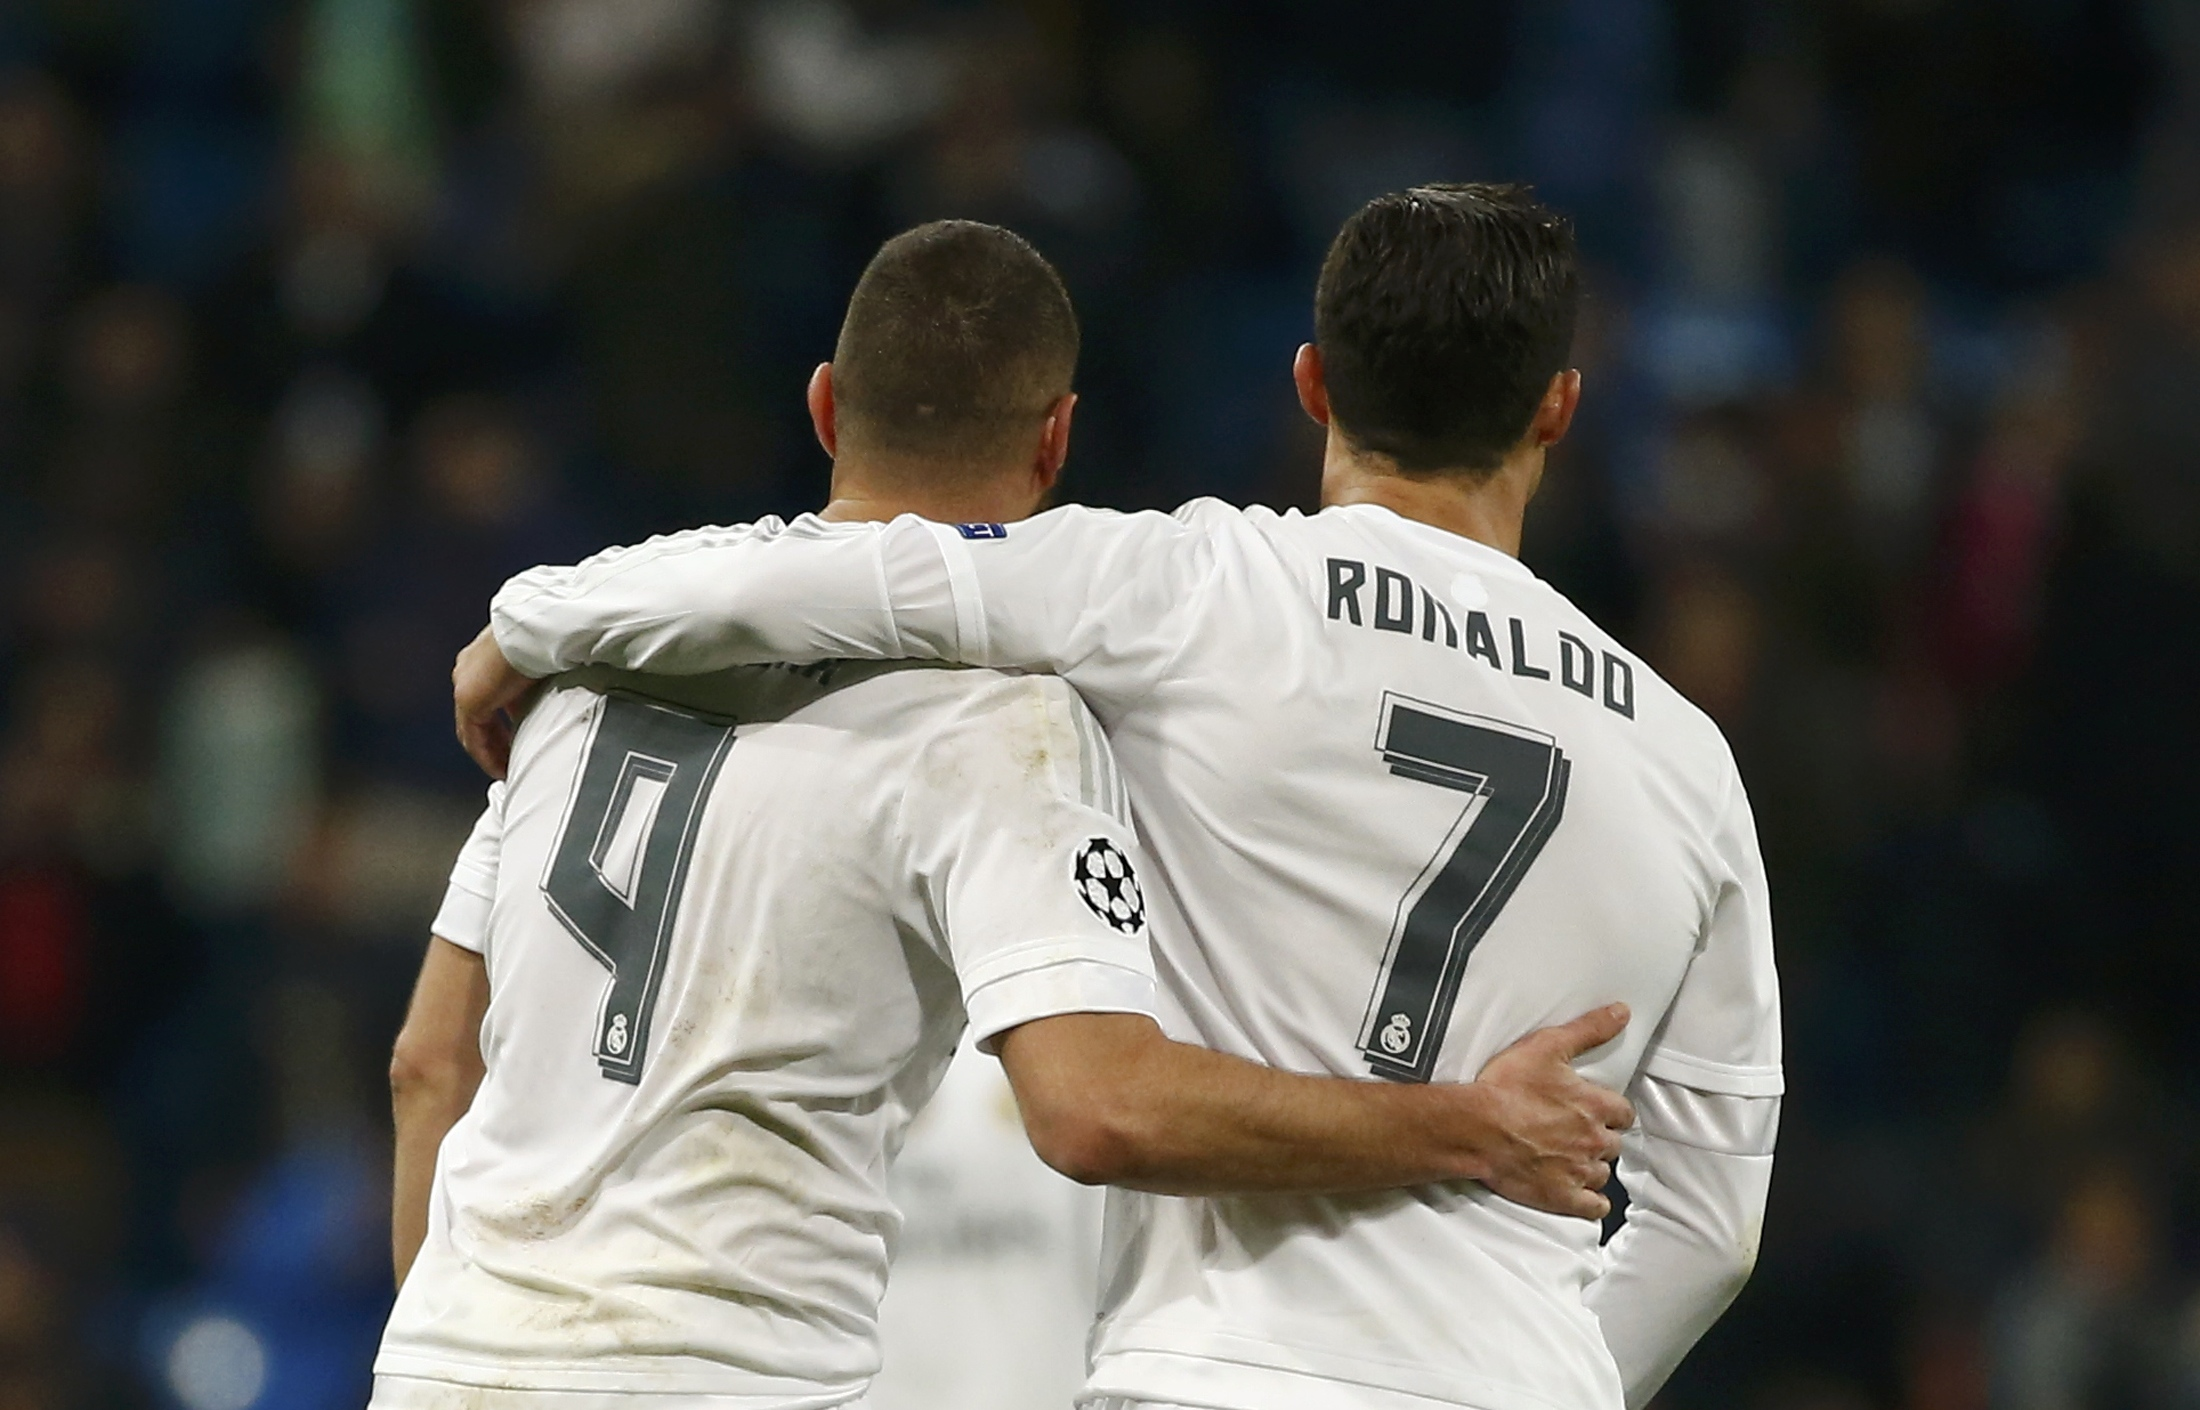 Real Madrid's Cristiano Ronaldo and Karim Benzema leave the pitch after their match Malmo of Champions League Group Stage in Santiago Bernabeu, Madrid, Spain on December 8, 2015. Photo: Reuters